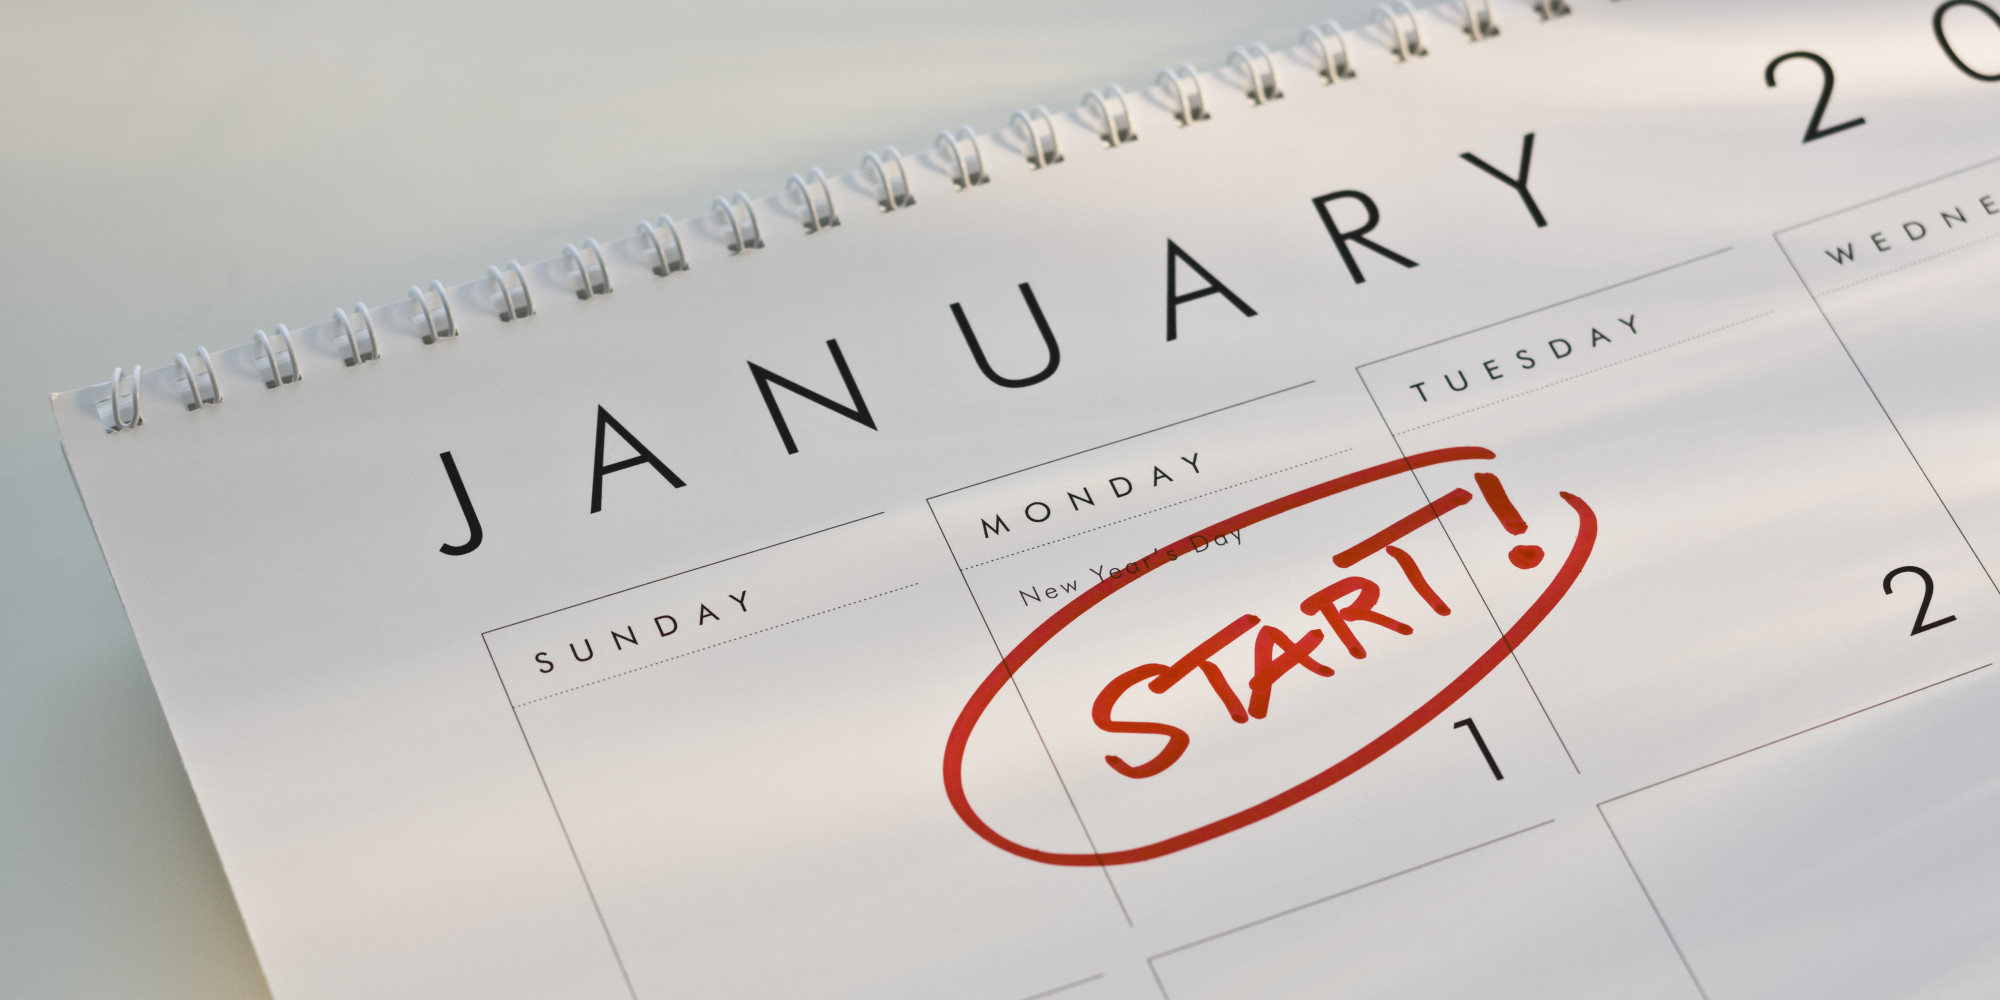 New Year Resolution Transition Away from Military Service